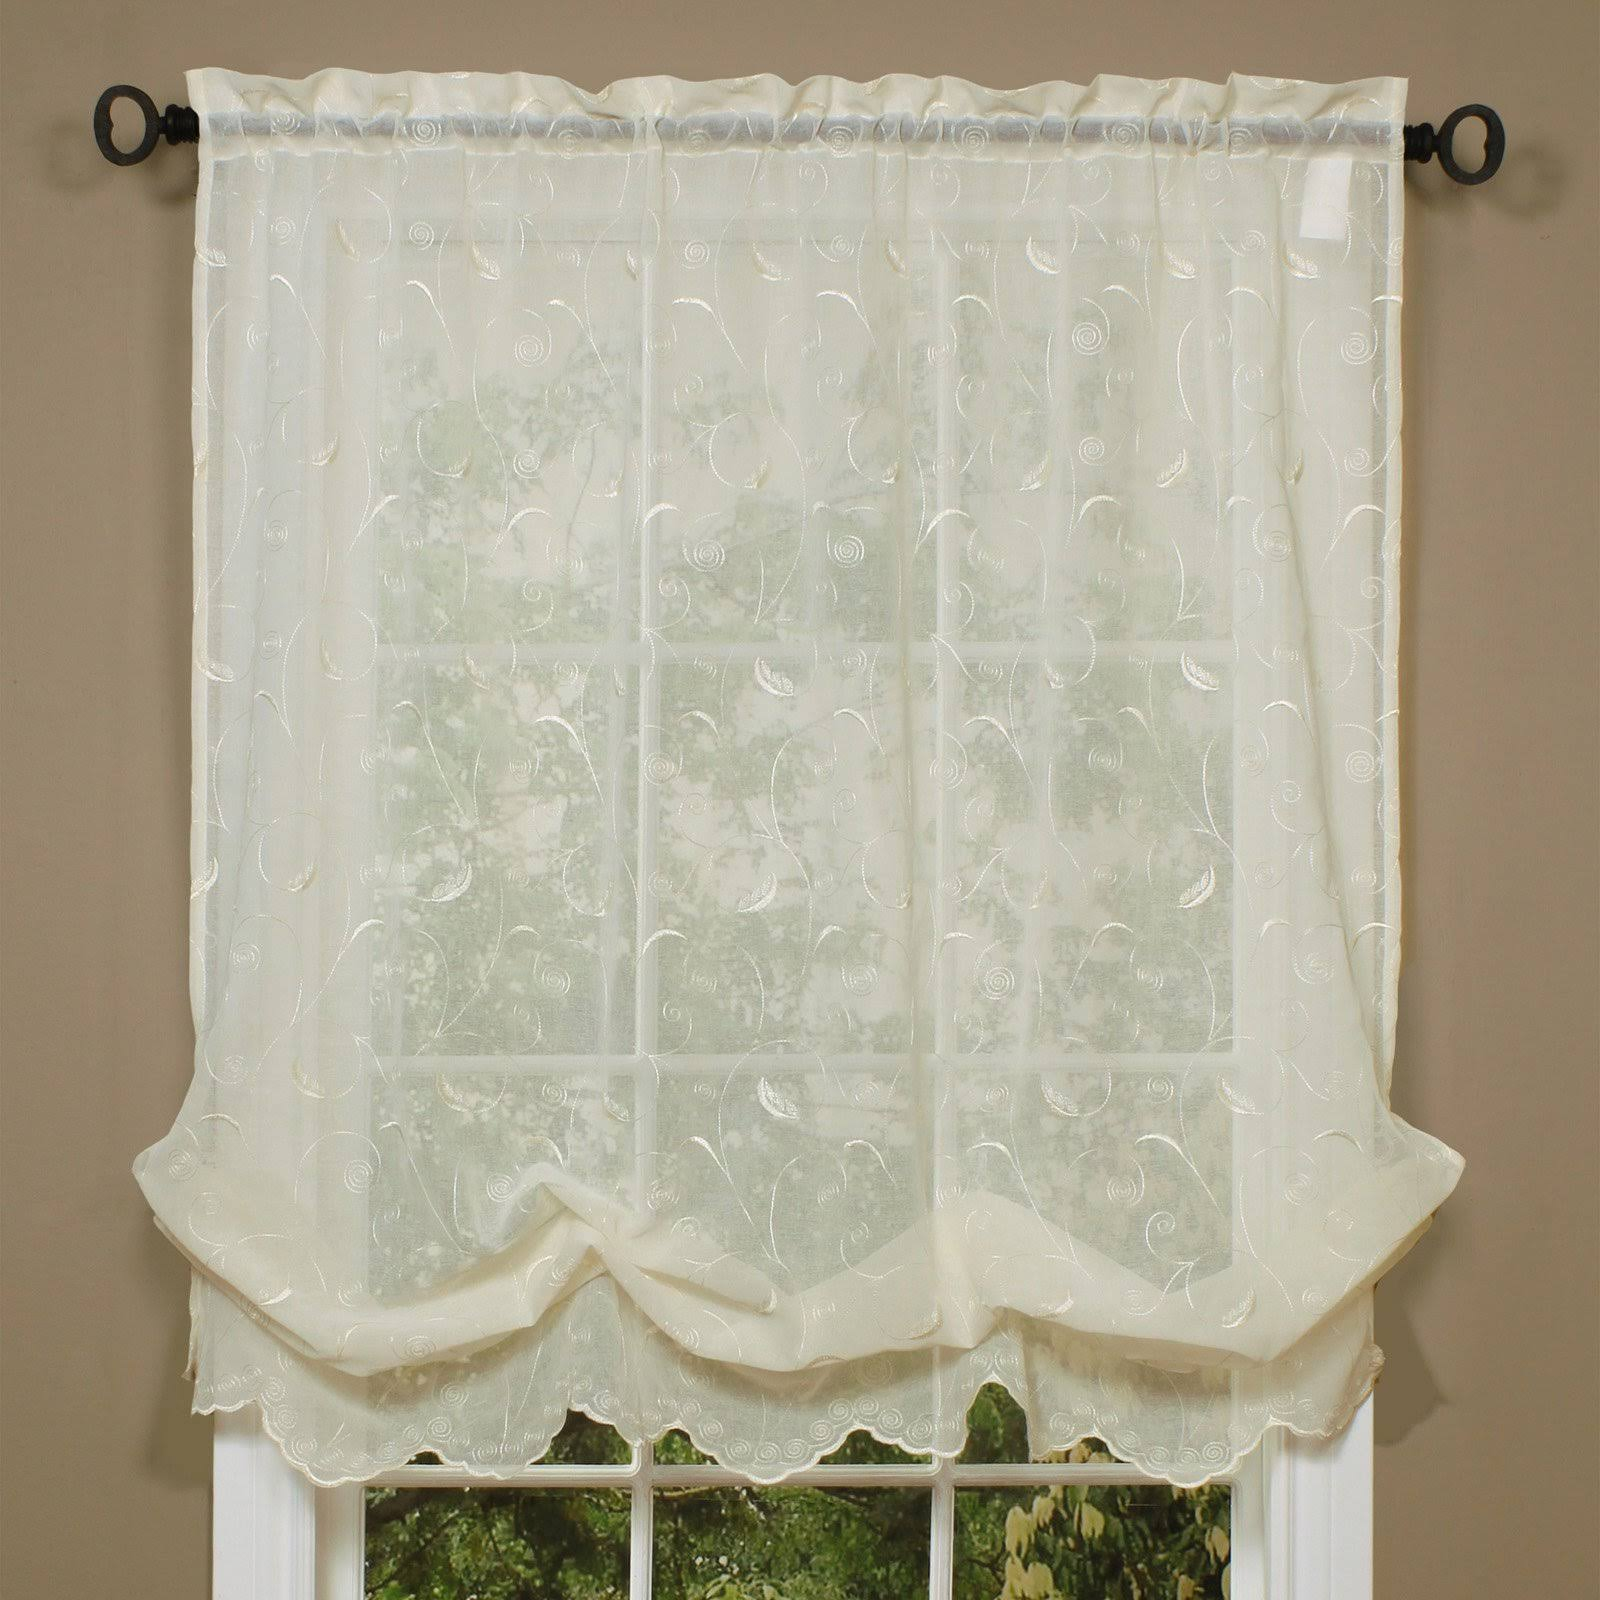 Habitat Hathaway Balloon Curtain Cream 54 x 63